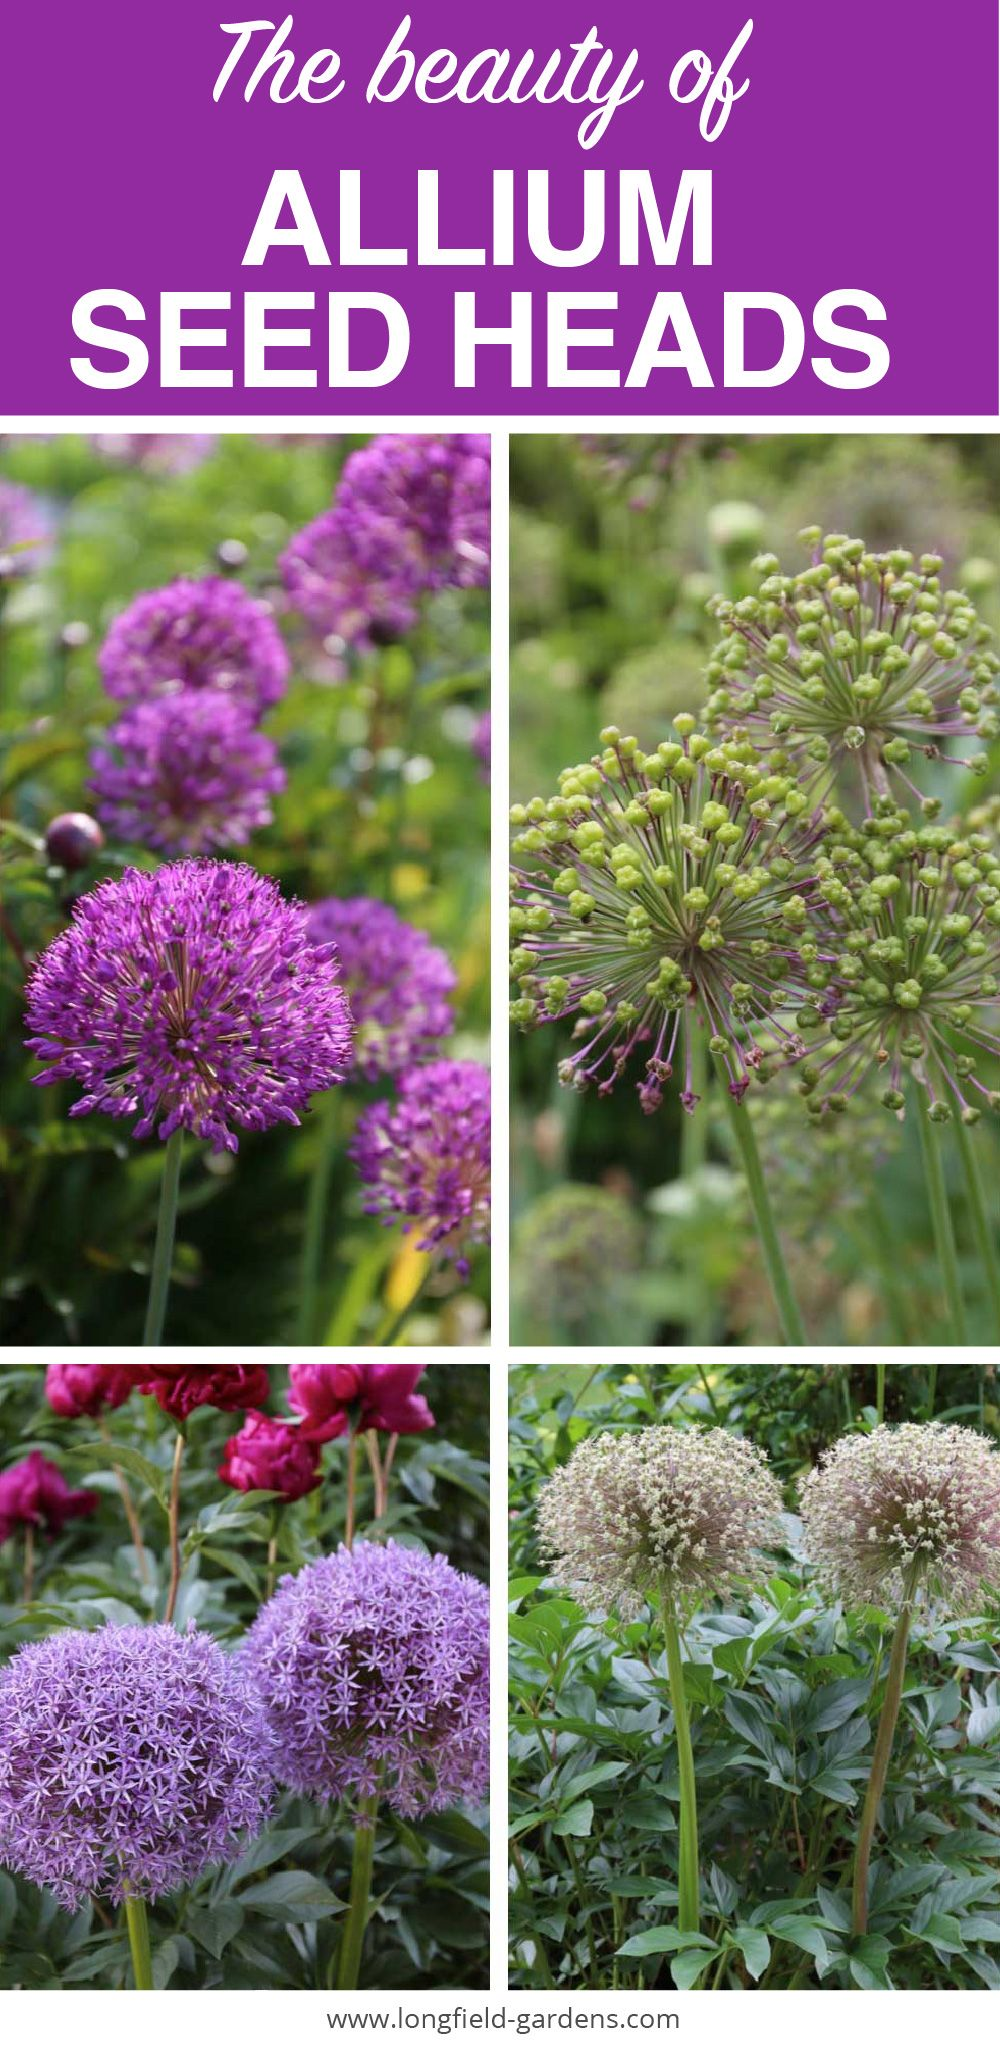 Another Reason To Love Ornamental Alliums Seed Heads Longfield Gardens Longfield Gardens Allium Flowers Amazing Gardens